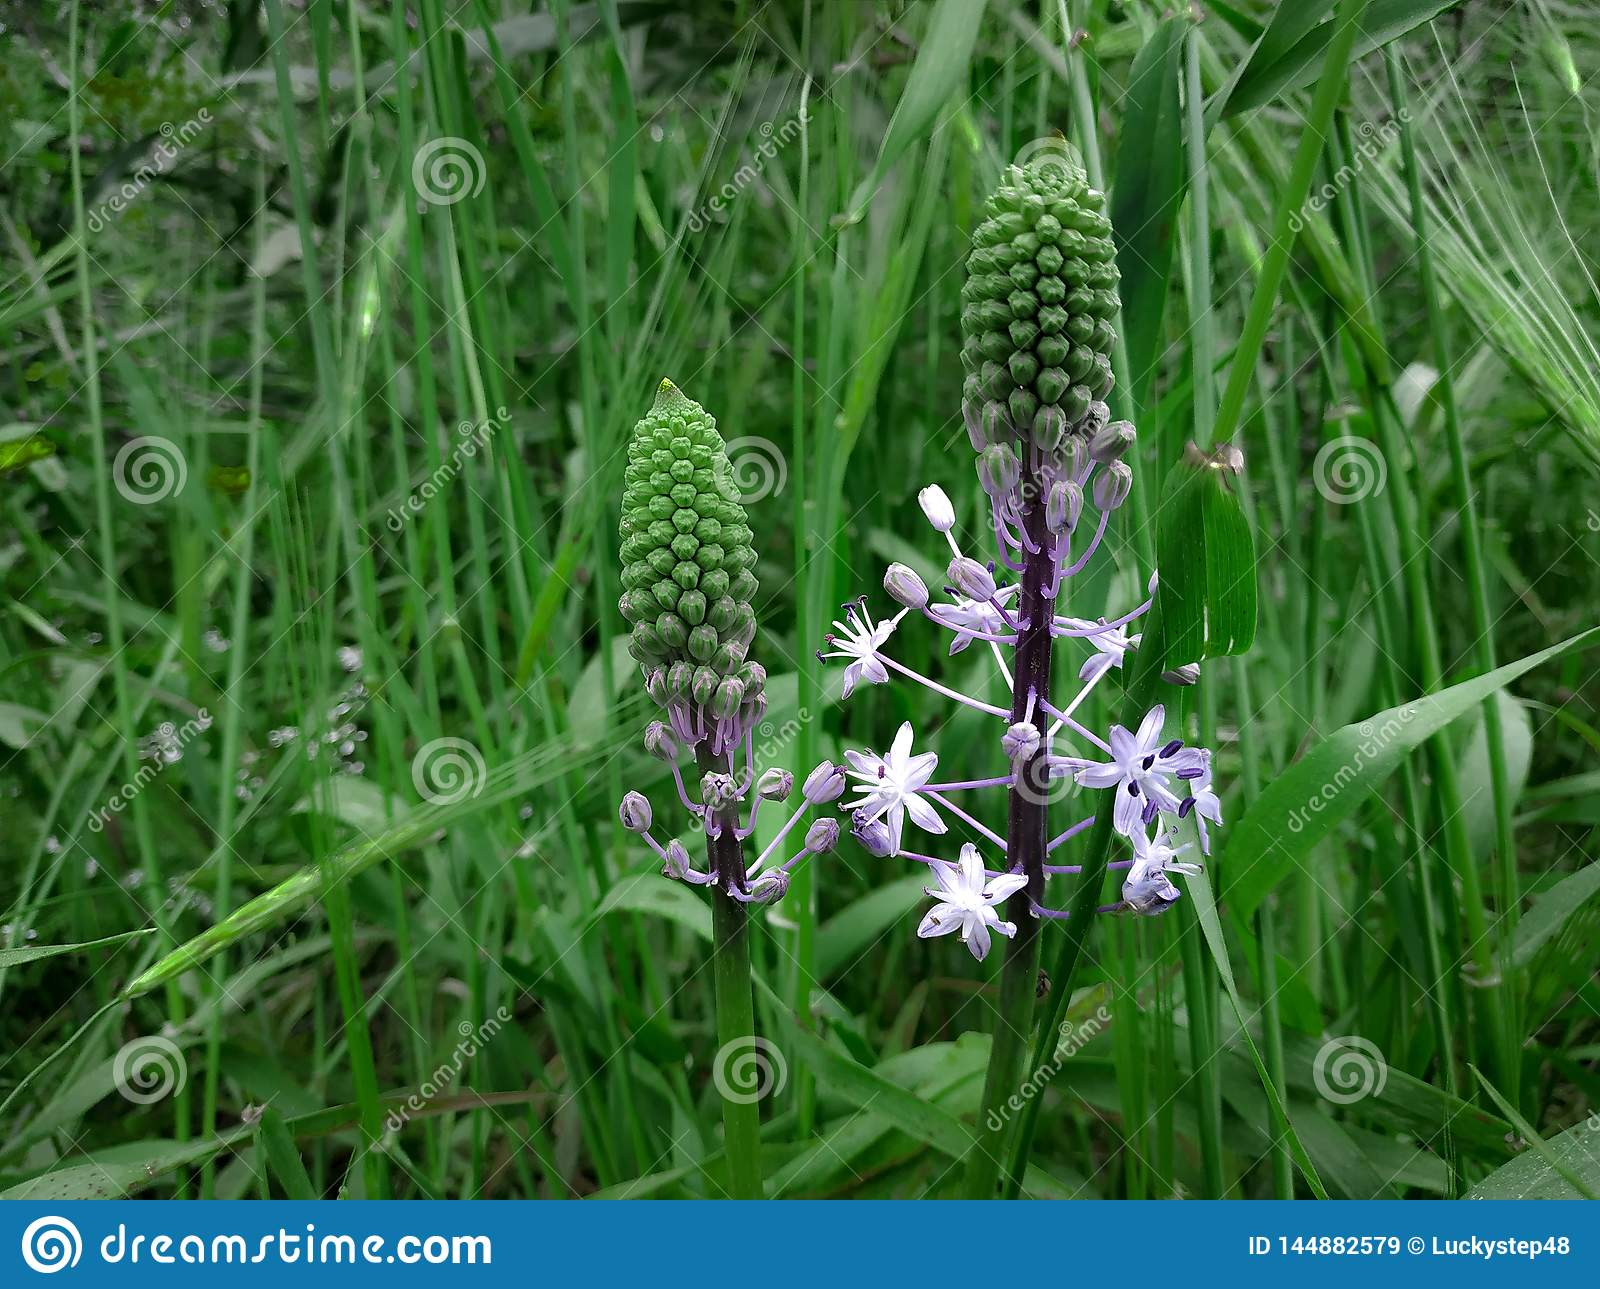 Hyacinth Squill light purple blooming flowers. Green grass landscape background. Wildflower nature field in Israel